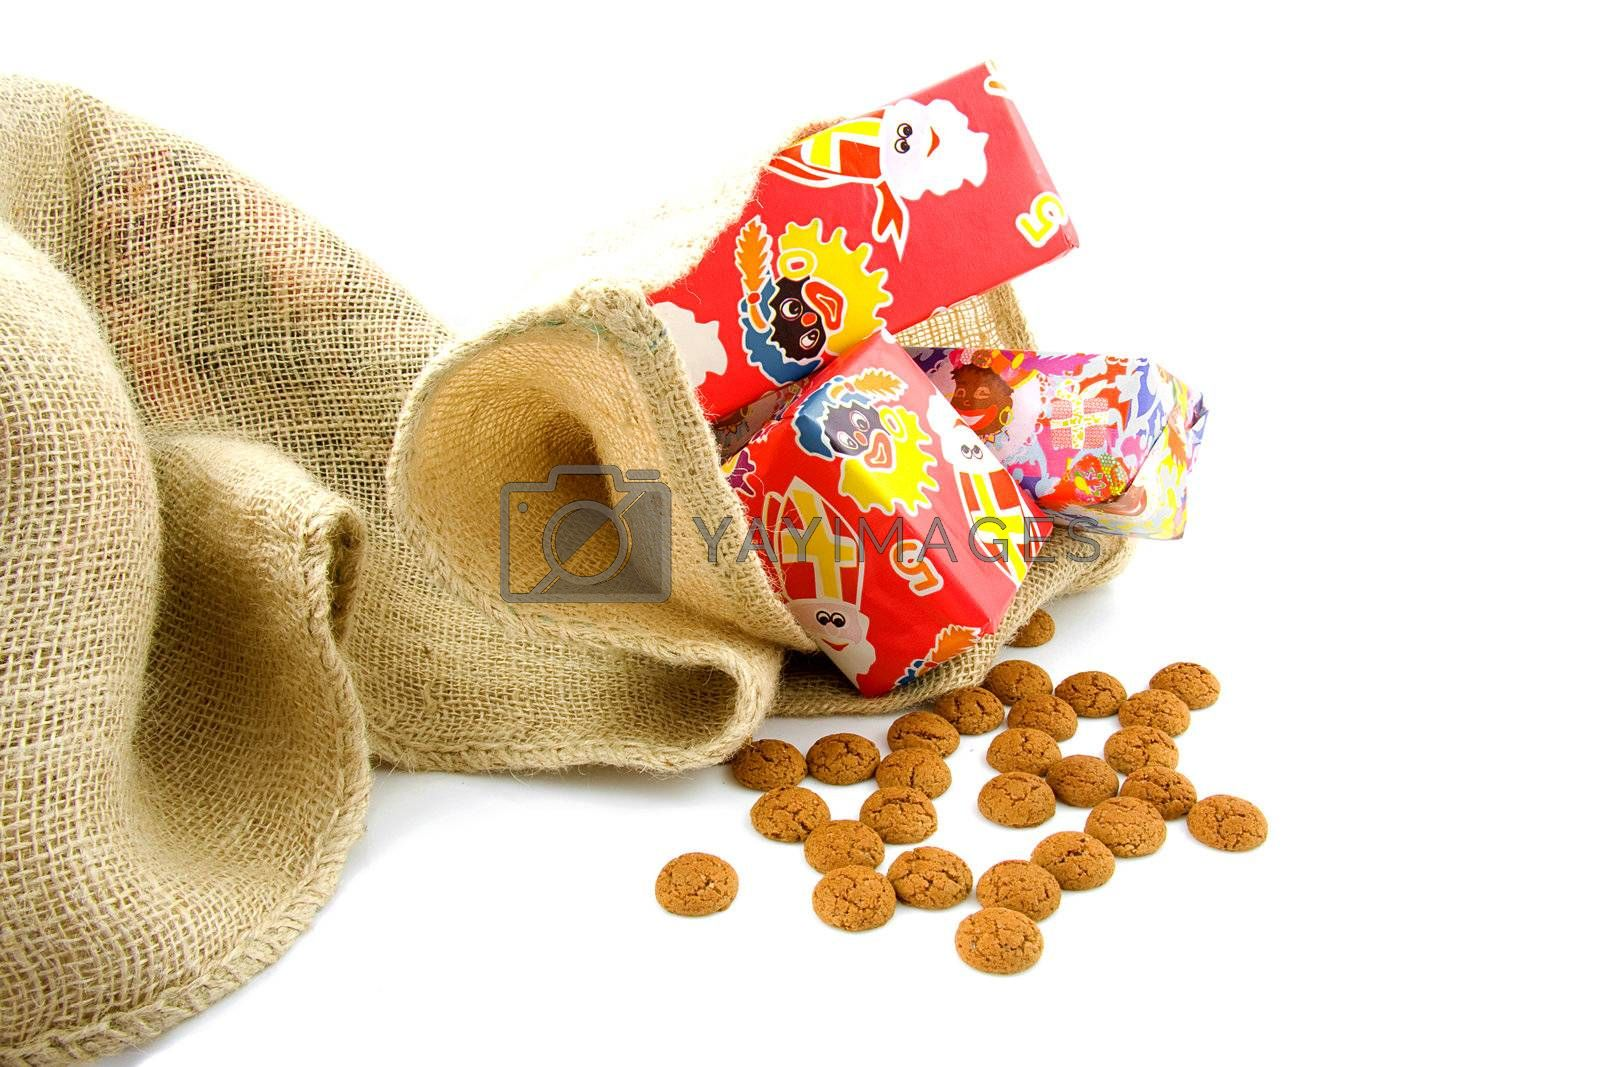 Typical Dutch celebration: Sinterklaas with presents in bag and ginger nuts, ready for the kids in december